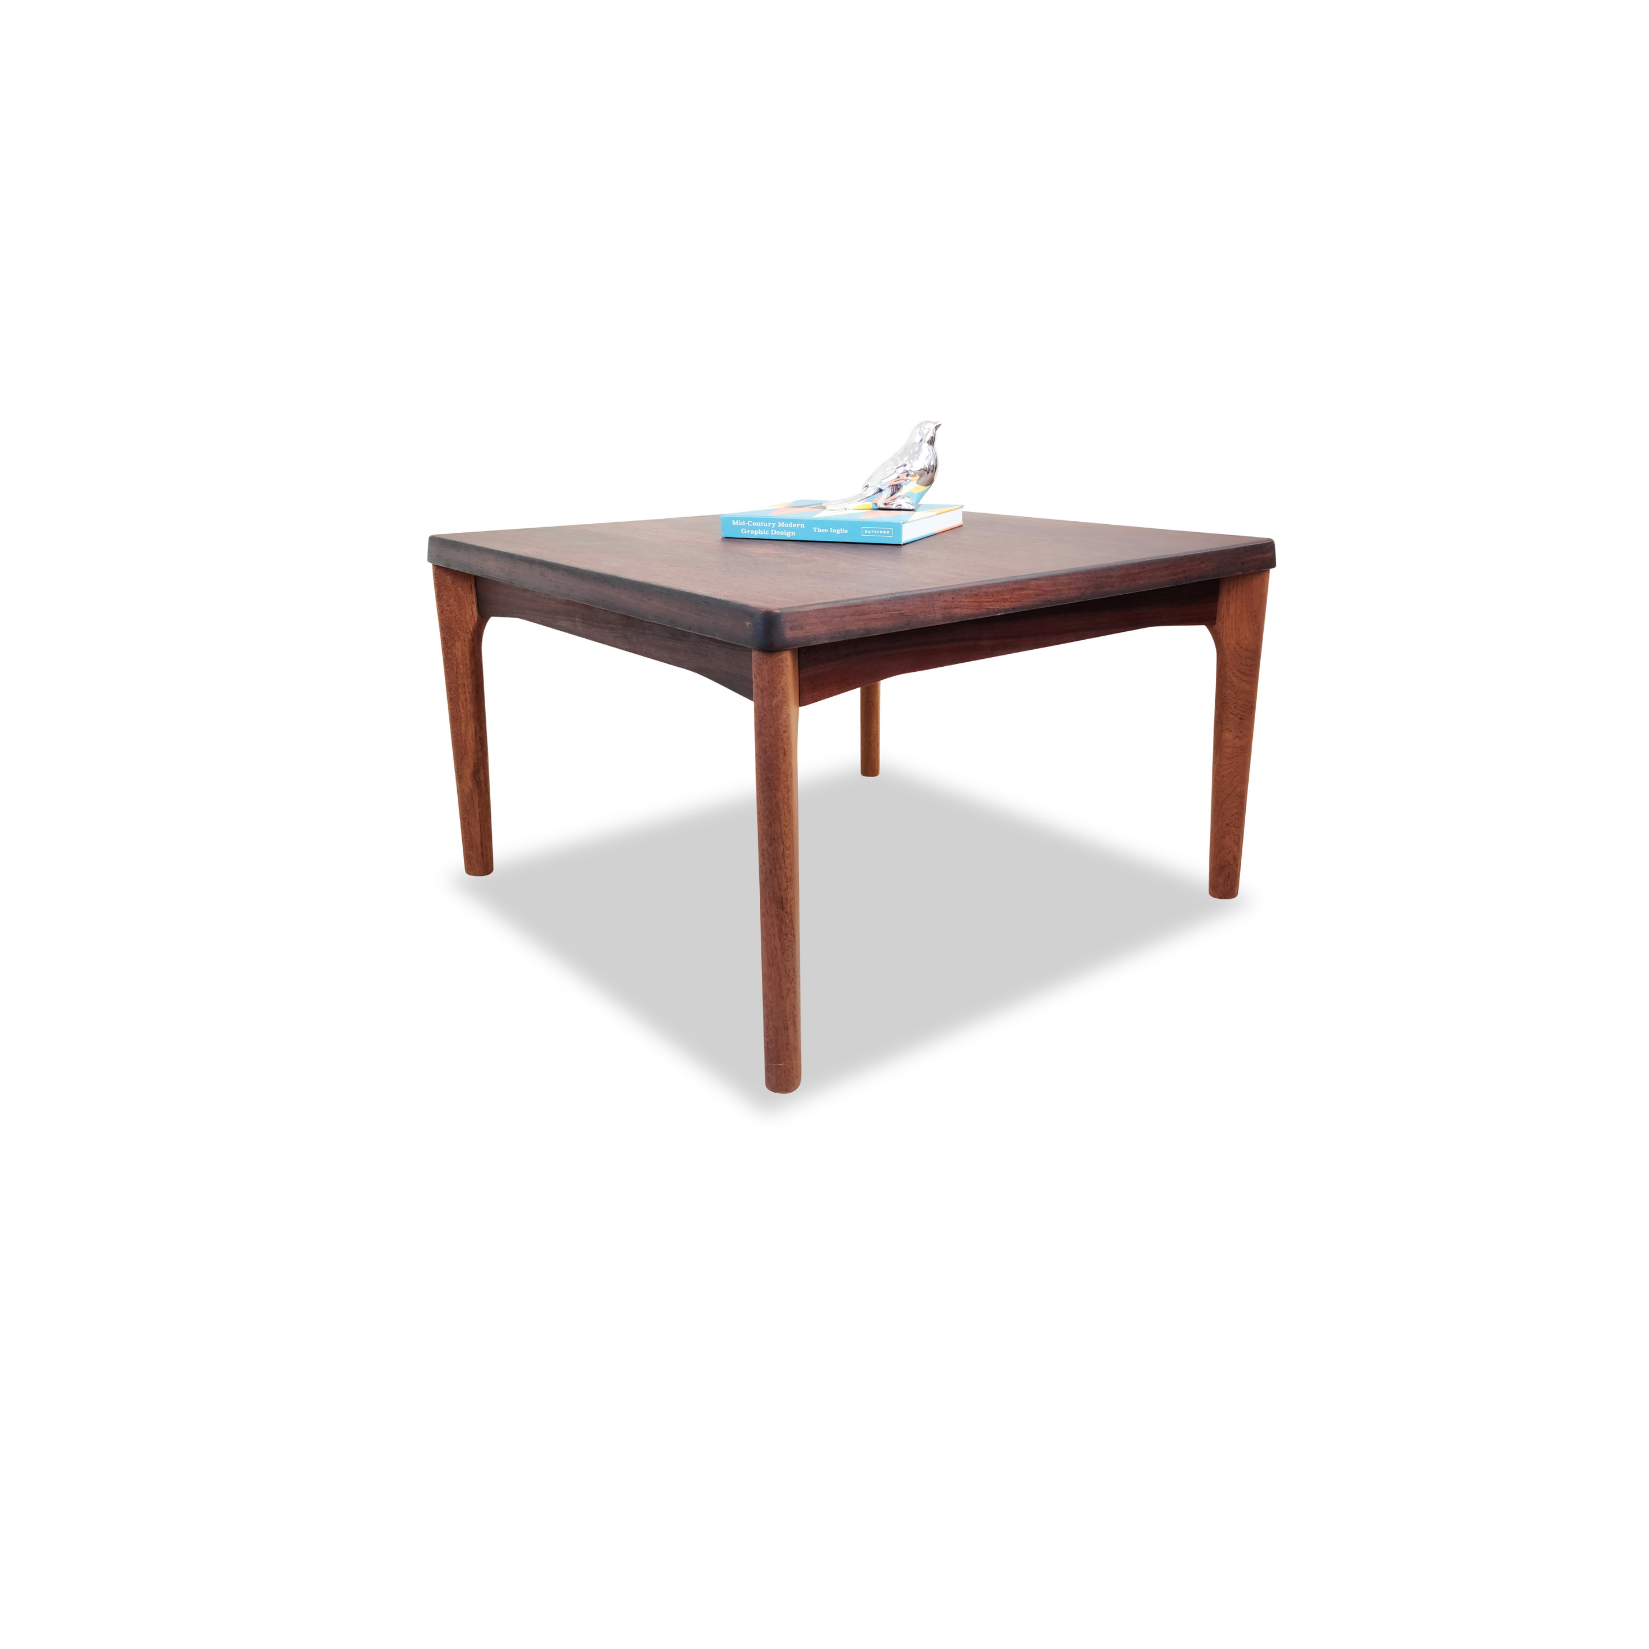 Henning Kjaernulf Rosewood Coffee Table